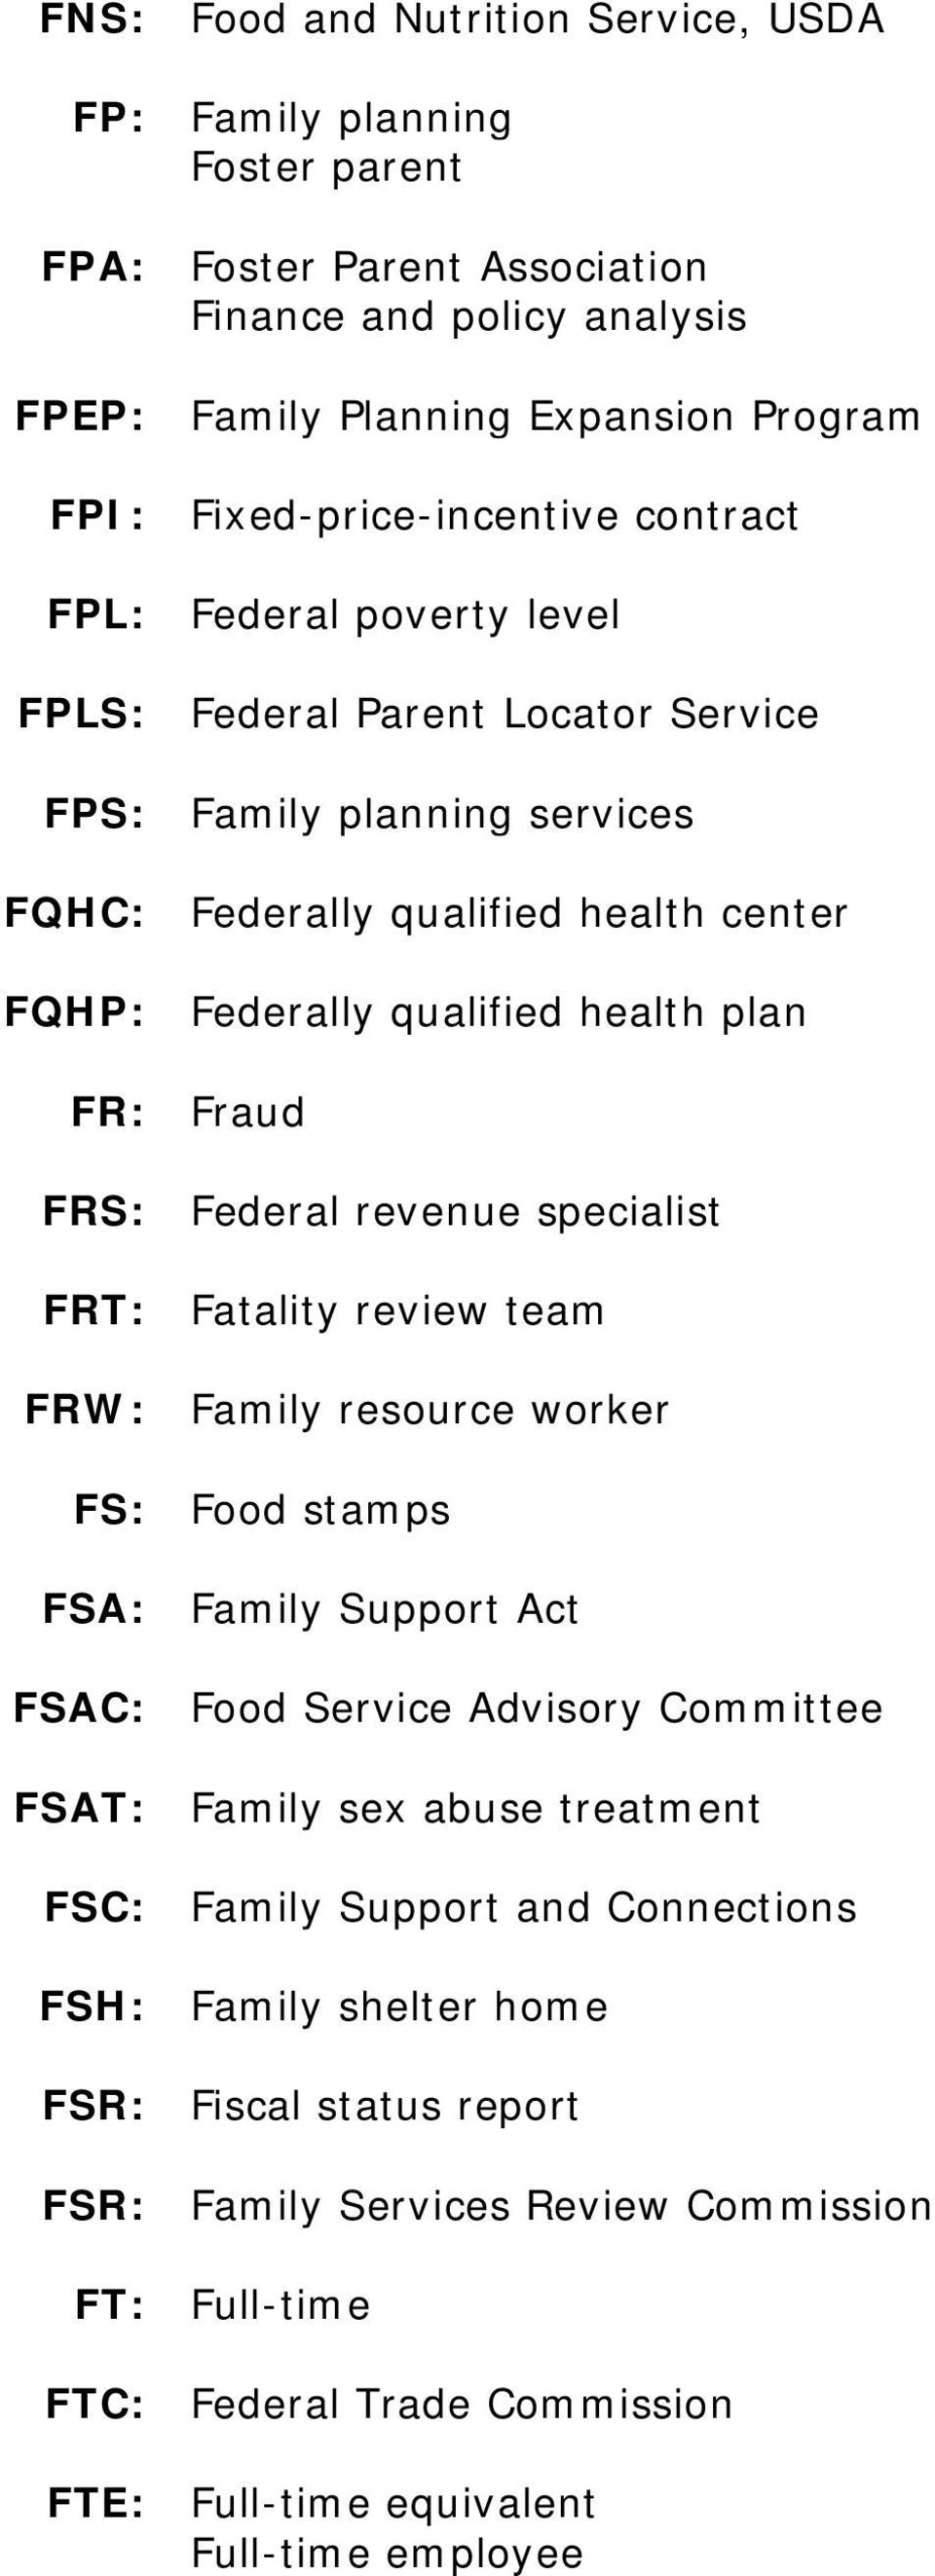 Federal revenue specialist FRT: Fatality review team FRW: Family resource worker FS: Food stamps FSA: Family Support Act FSAC: Food Service Advisory Committee FSAT: Family sex abuse treatment FSC: